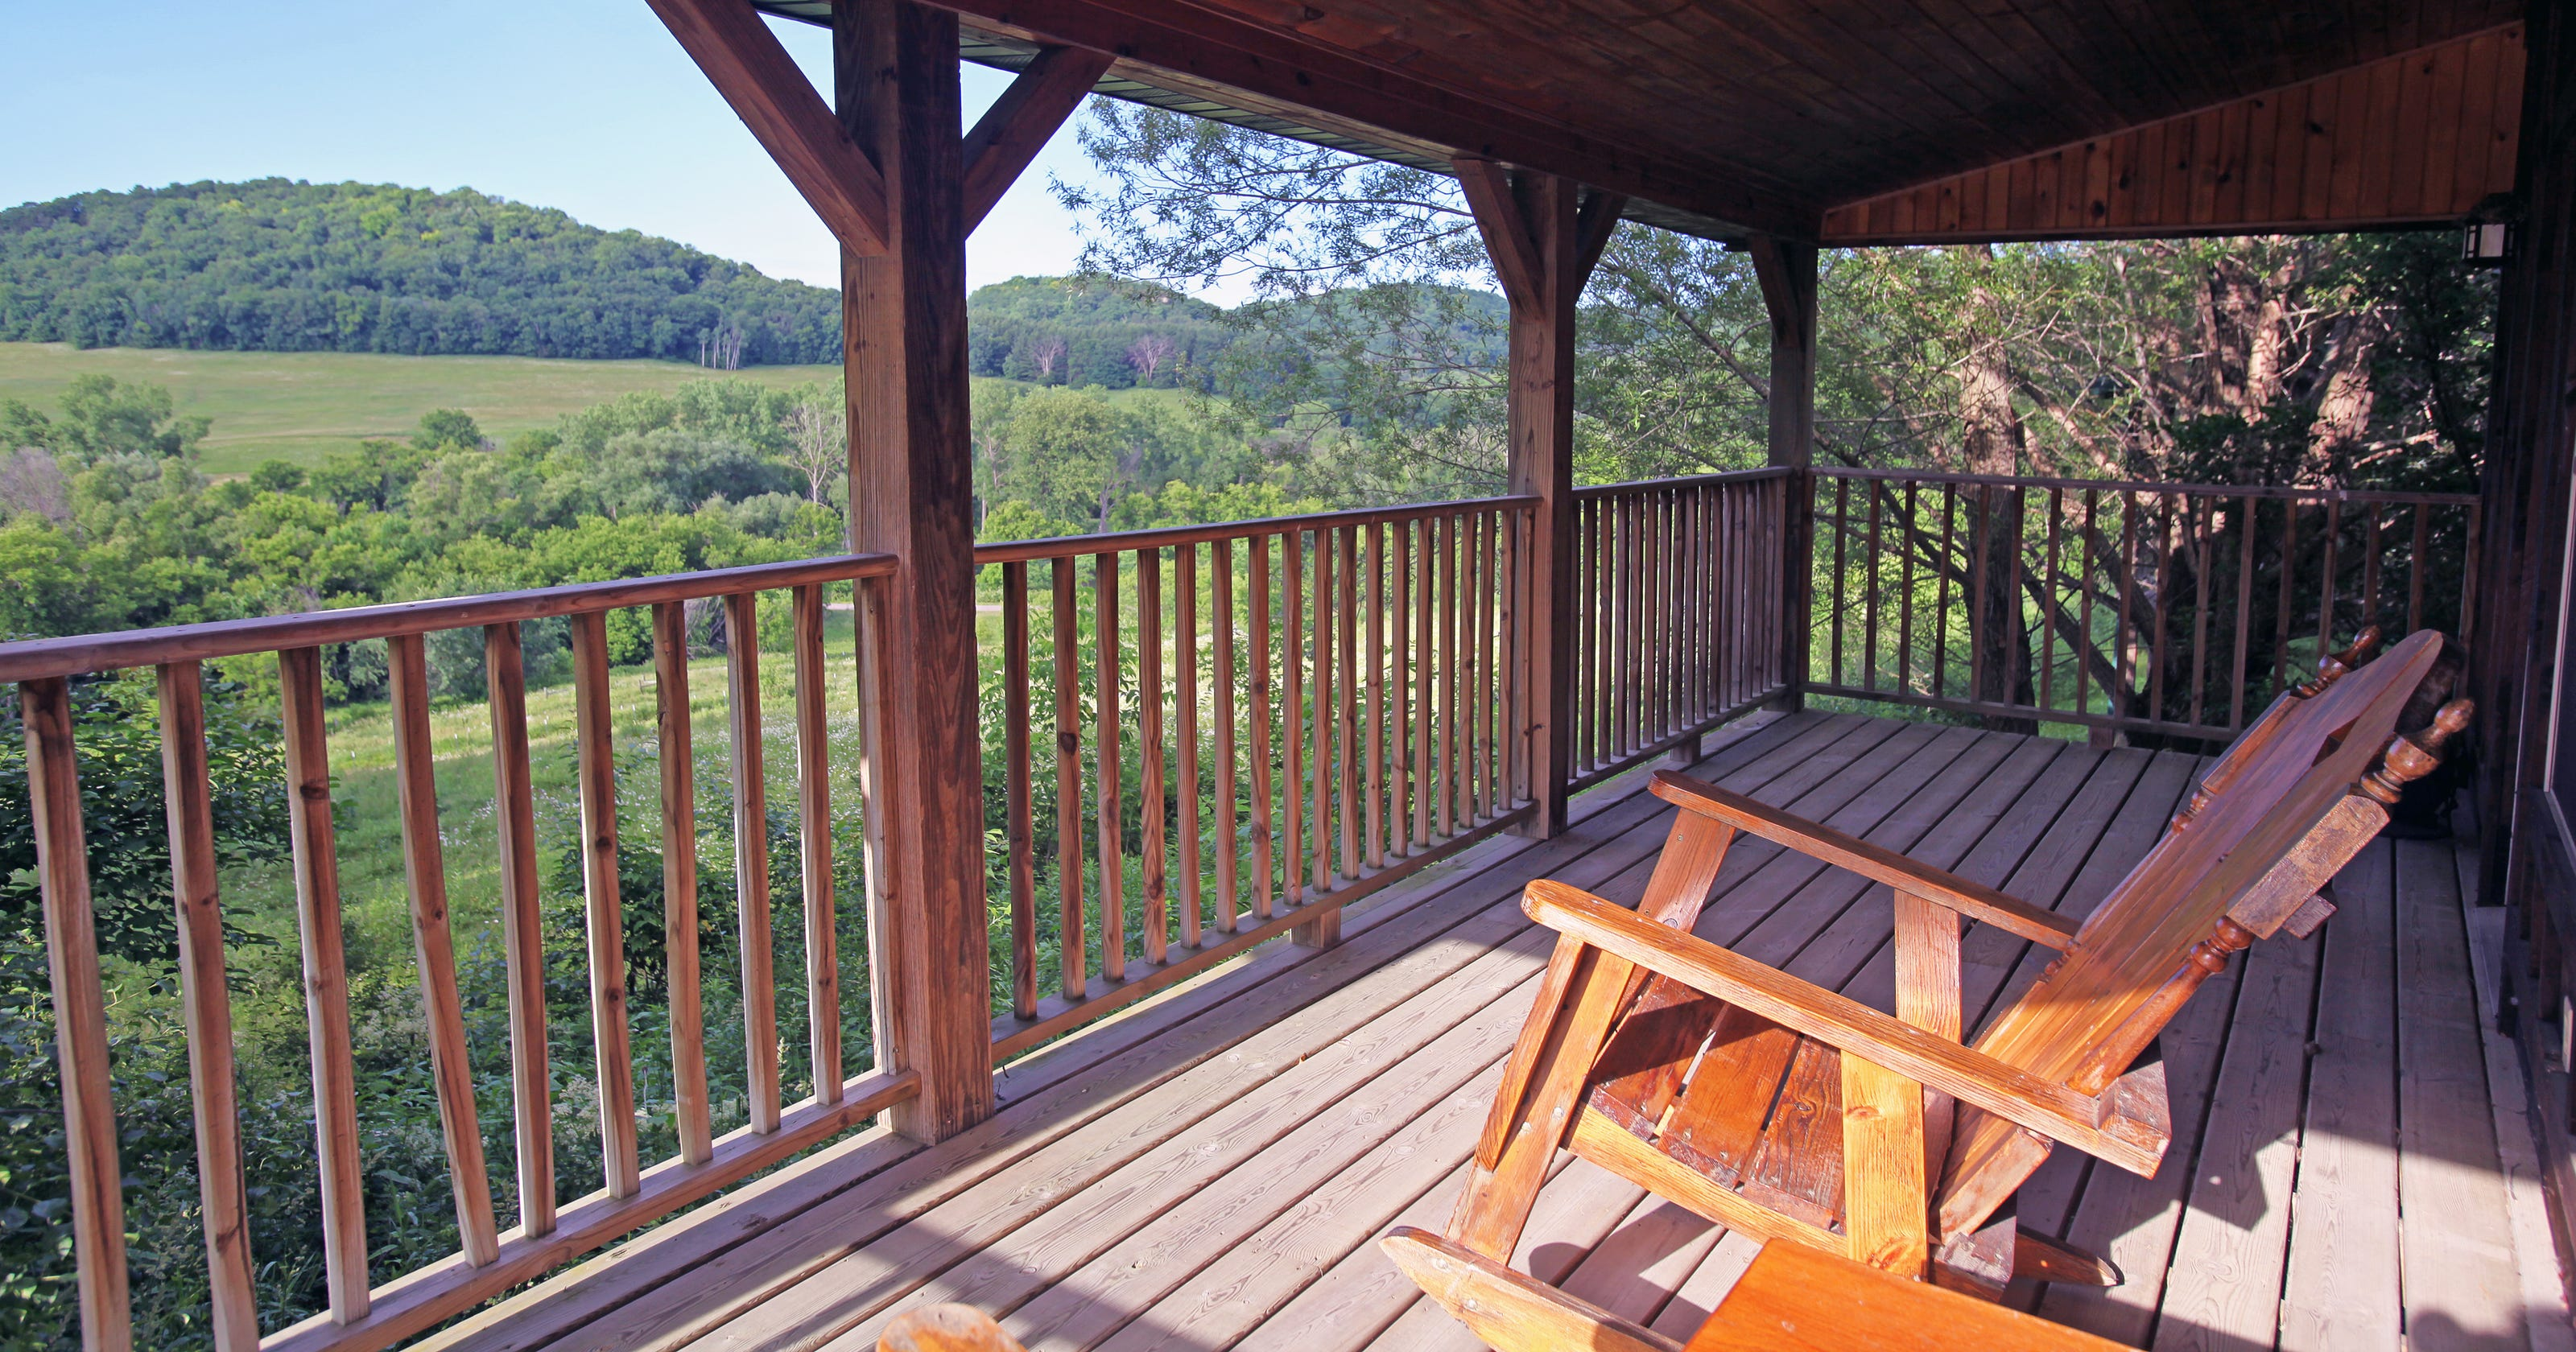 For a secluded getaway in Wisconsin, check out these cabin rentals